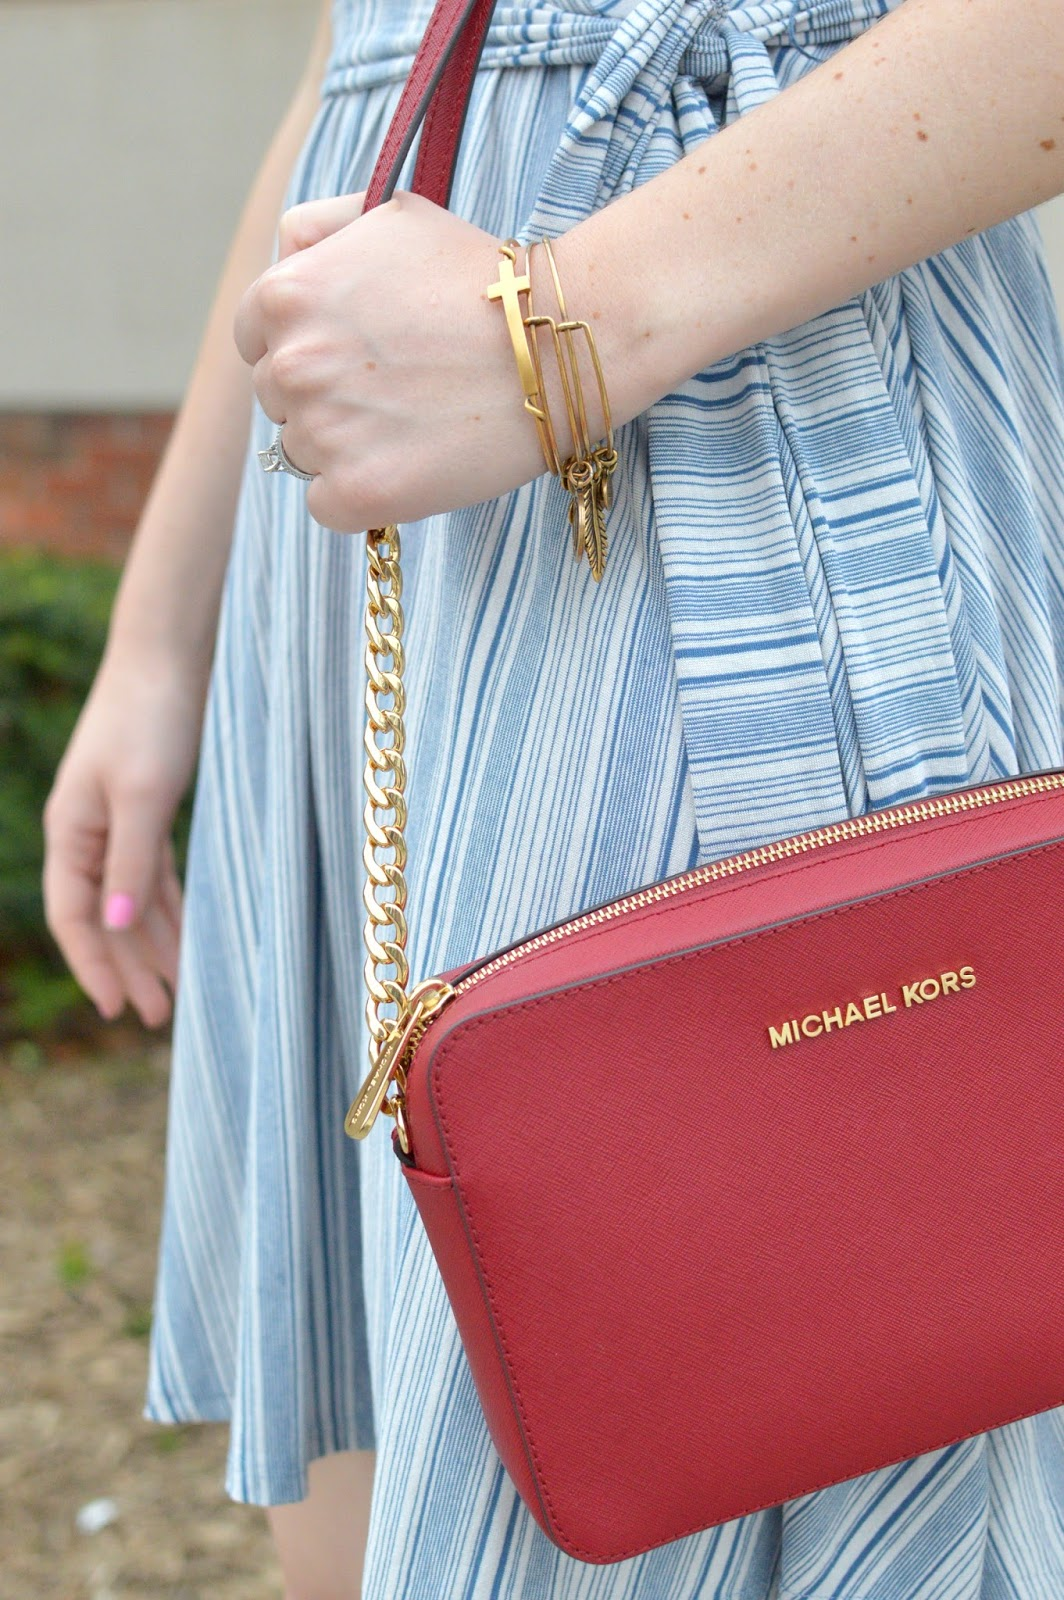 red michael kors purse and alex and ani cross bracelet